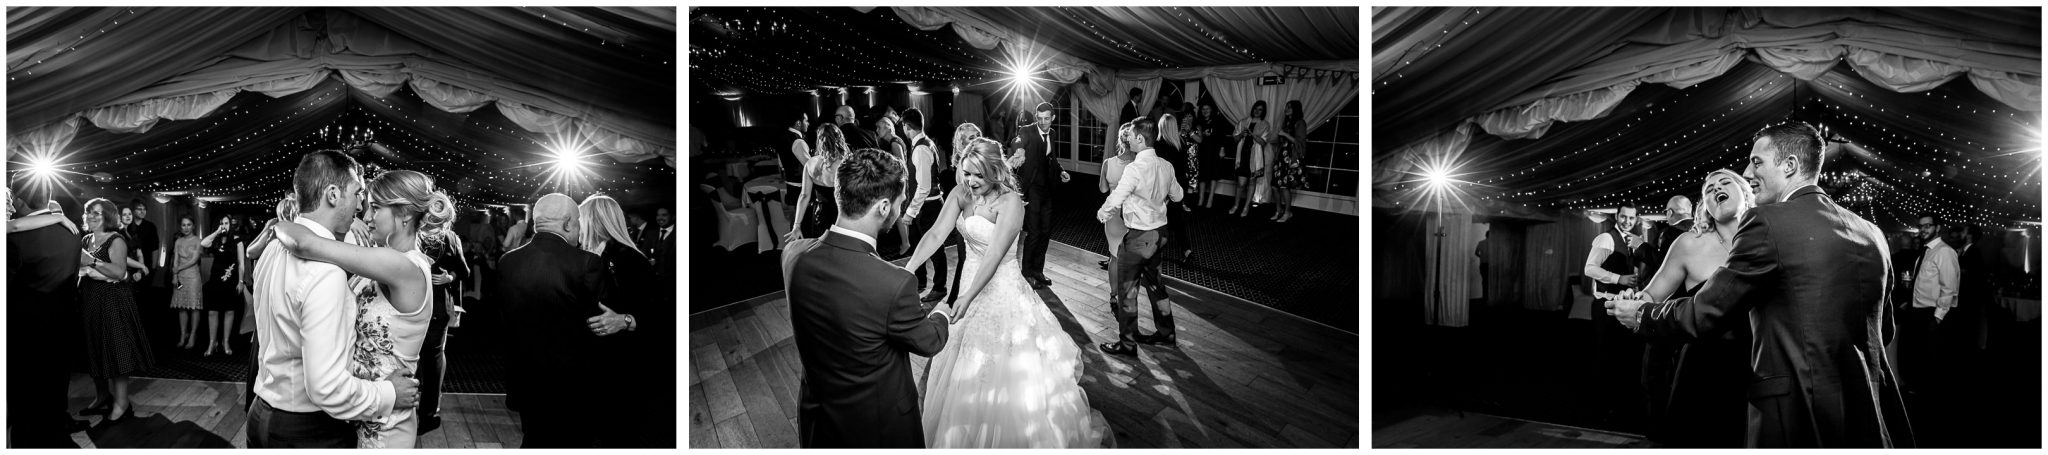 Audleys Wood wedding photograhy guests on dancefloor